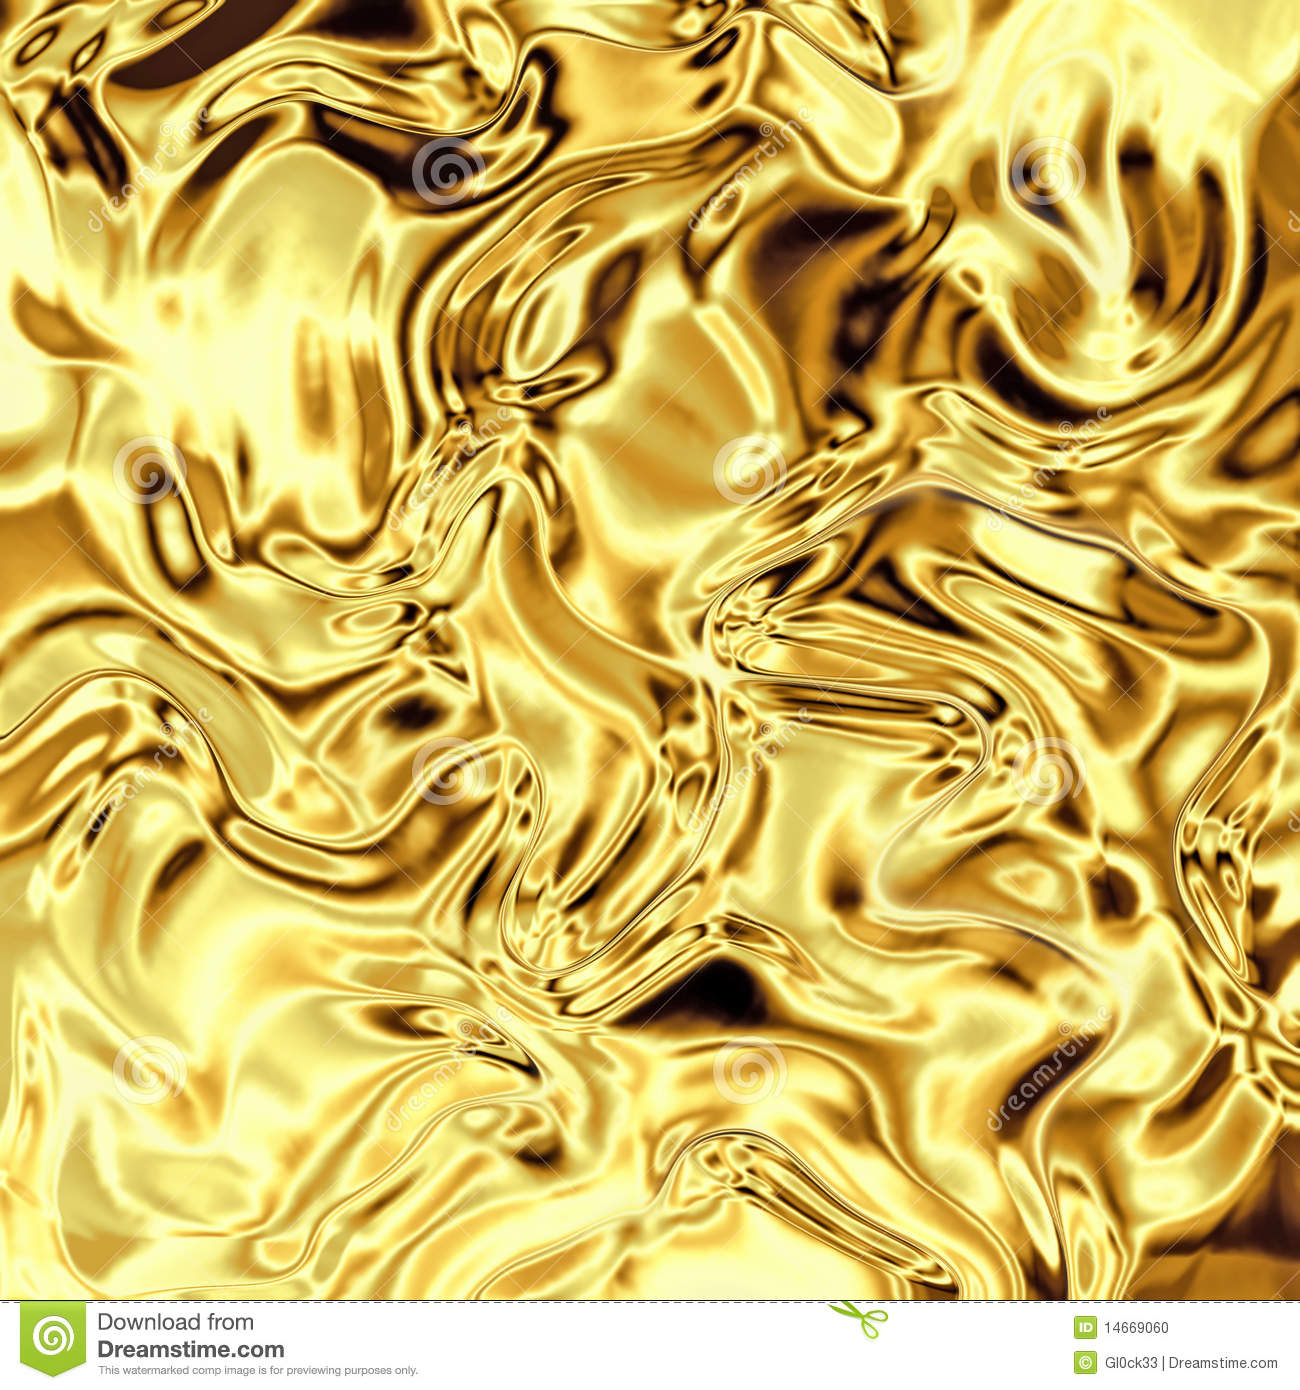 Gold Foil Curved Stock Photo - Image: 14669060